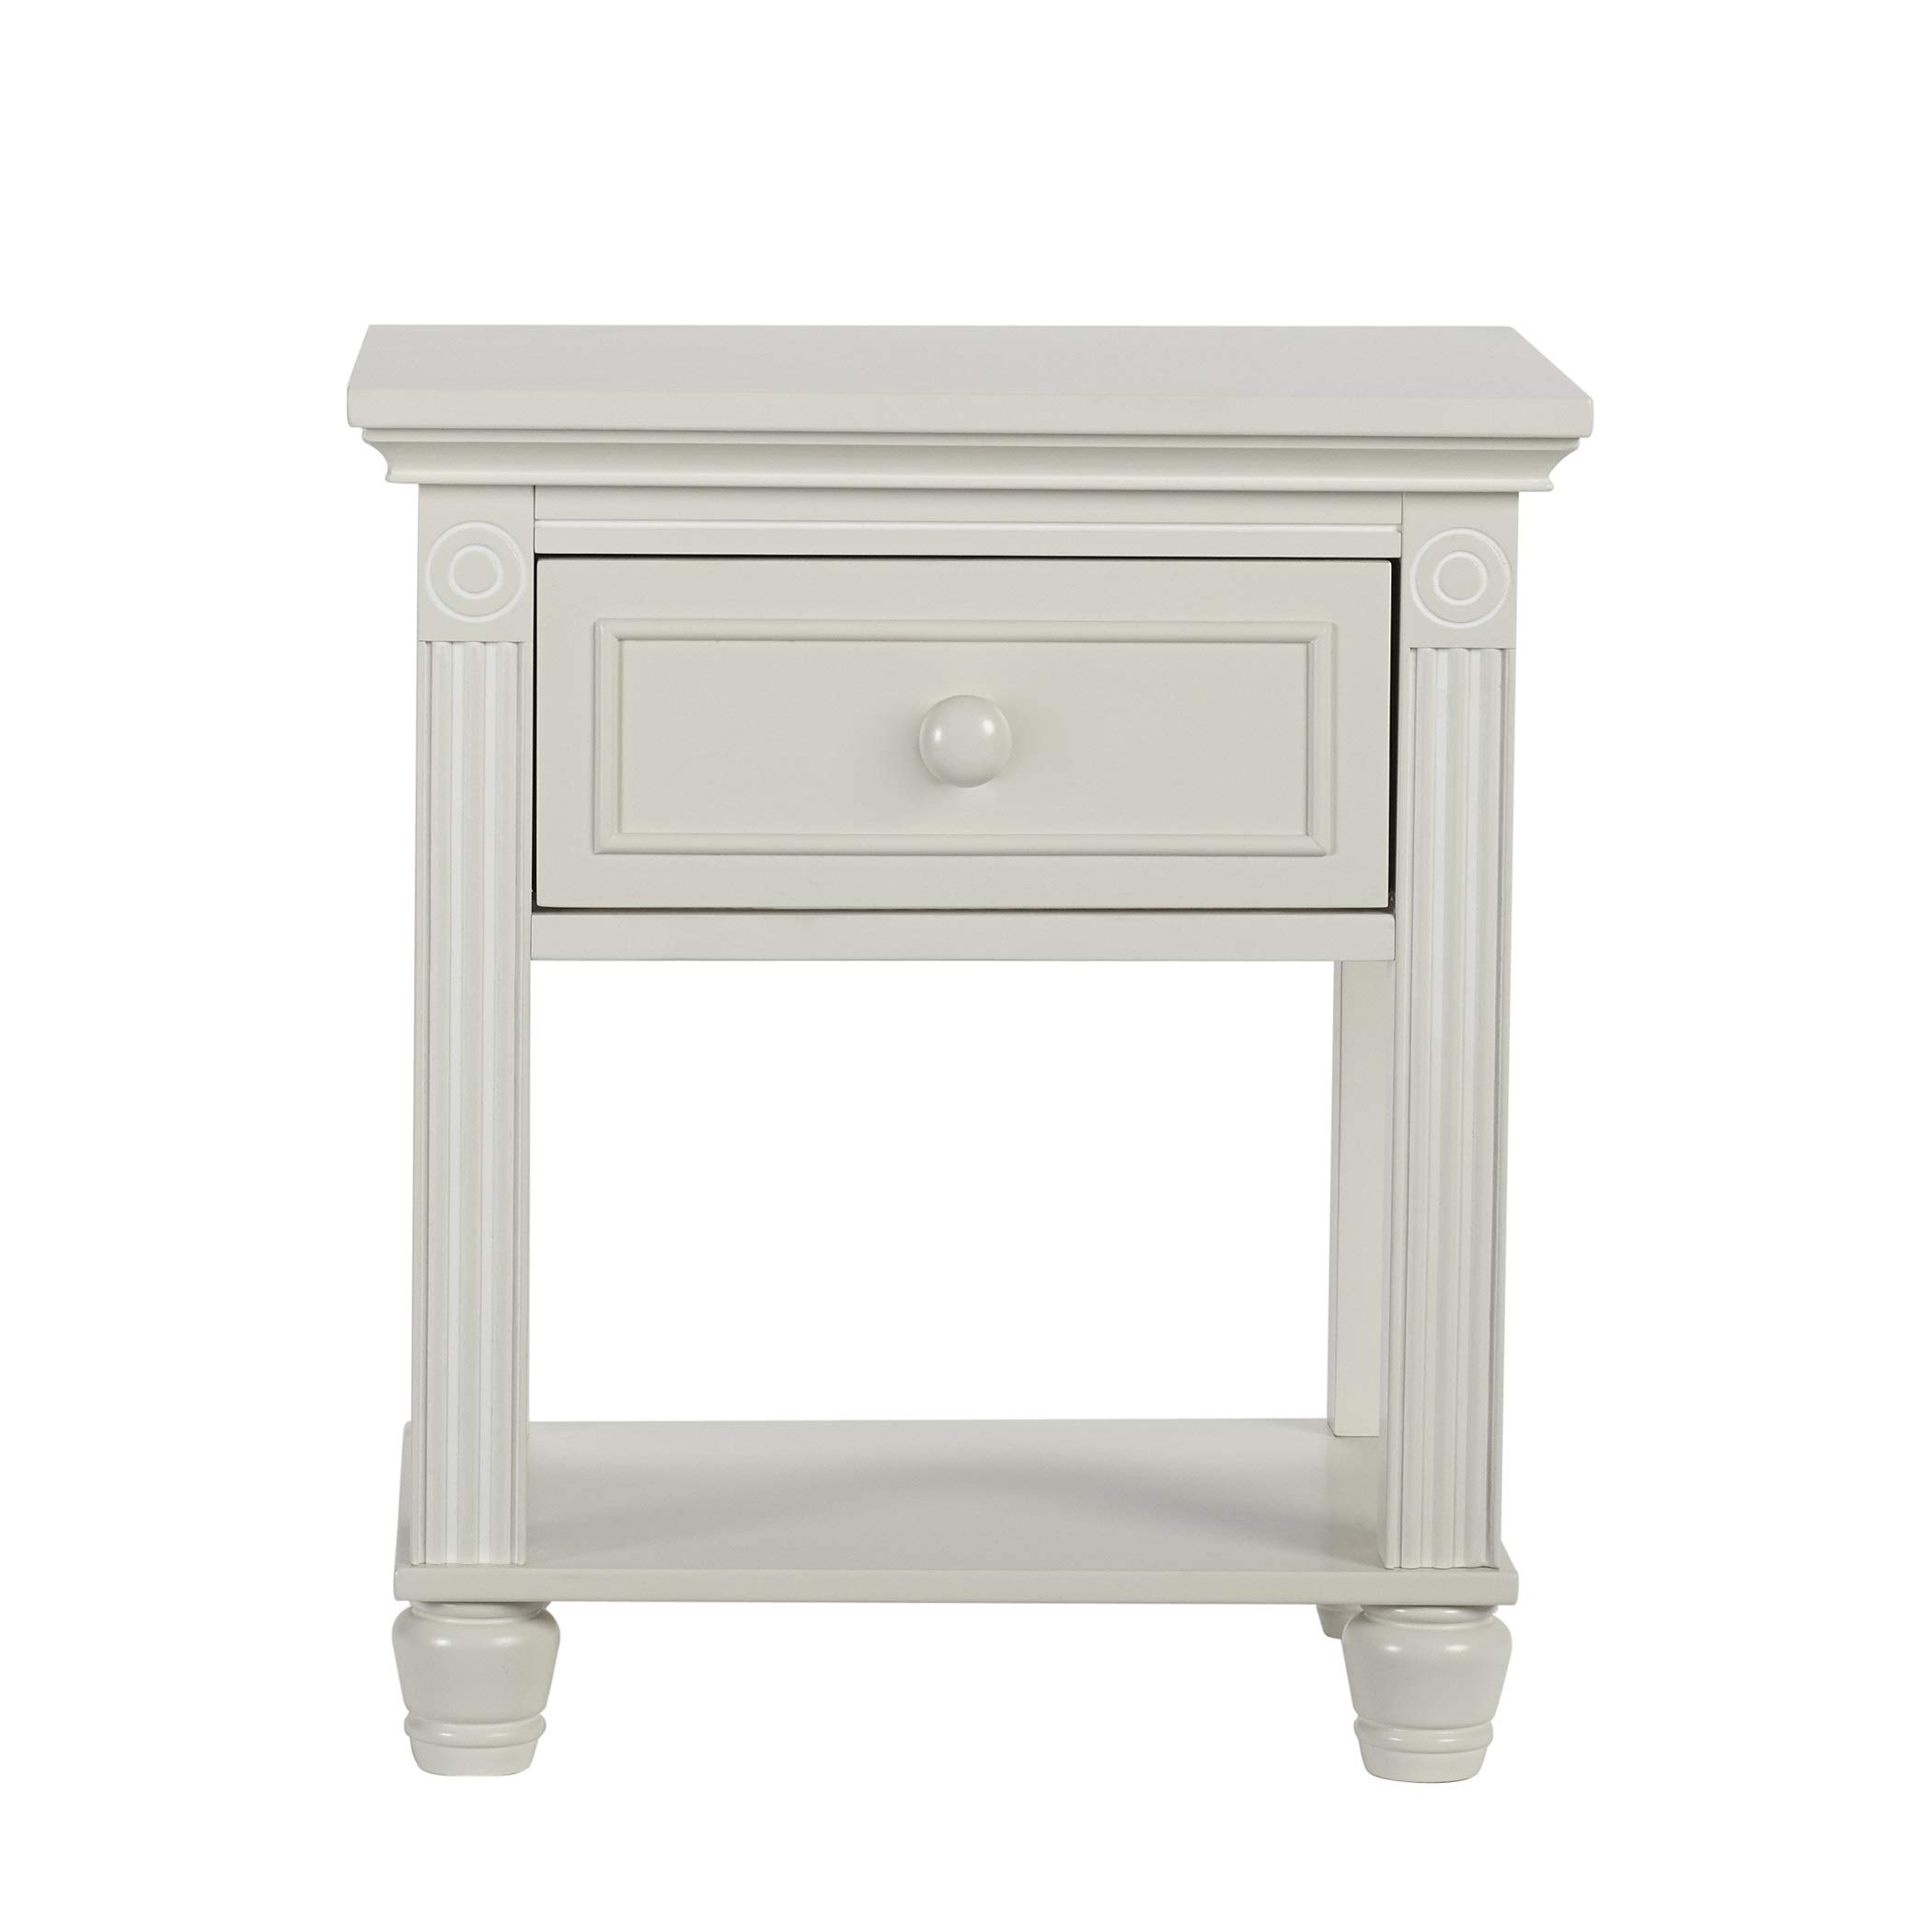 Montana Collection Natural Hardwood Nightstand End Table Combo   Lasting Quality & Design   Kiln-dried & Hand-Crafted Construction, Glazed White